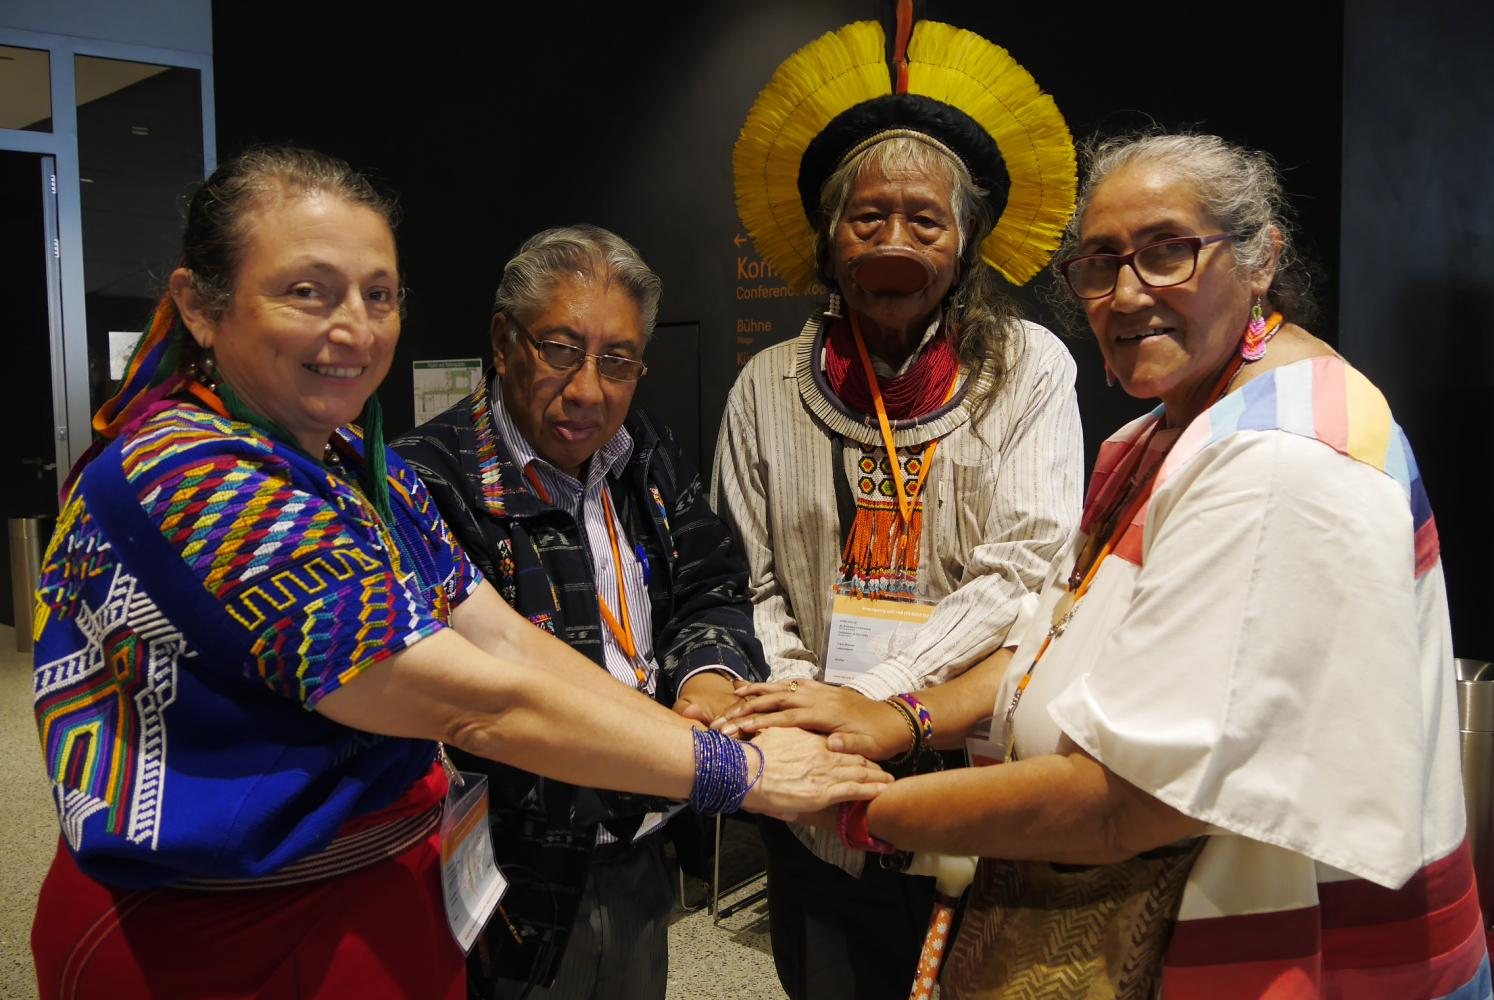 A group of indigenous leaders from Central and South America join hands in a symbolic gesture to fight against the violence of governments and agribusinesses that is destroying their forest homes.